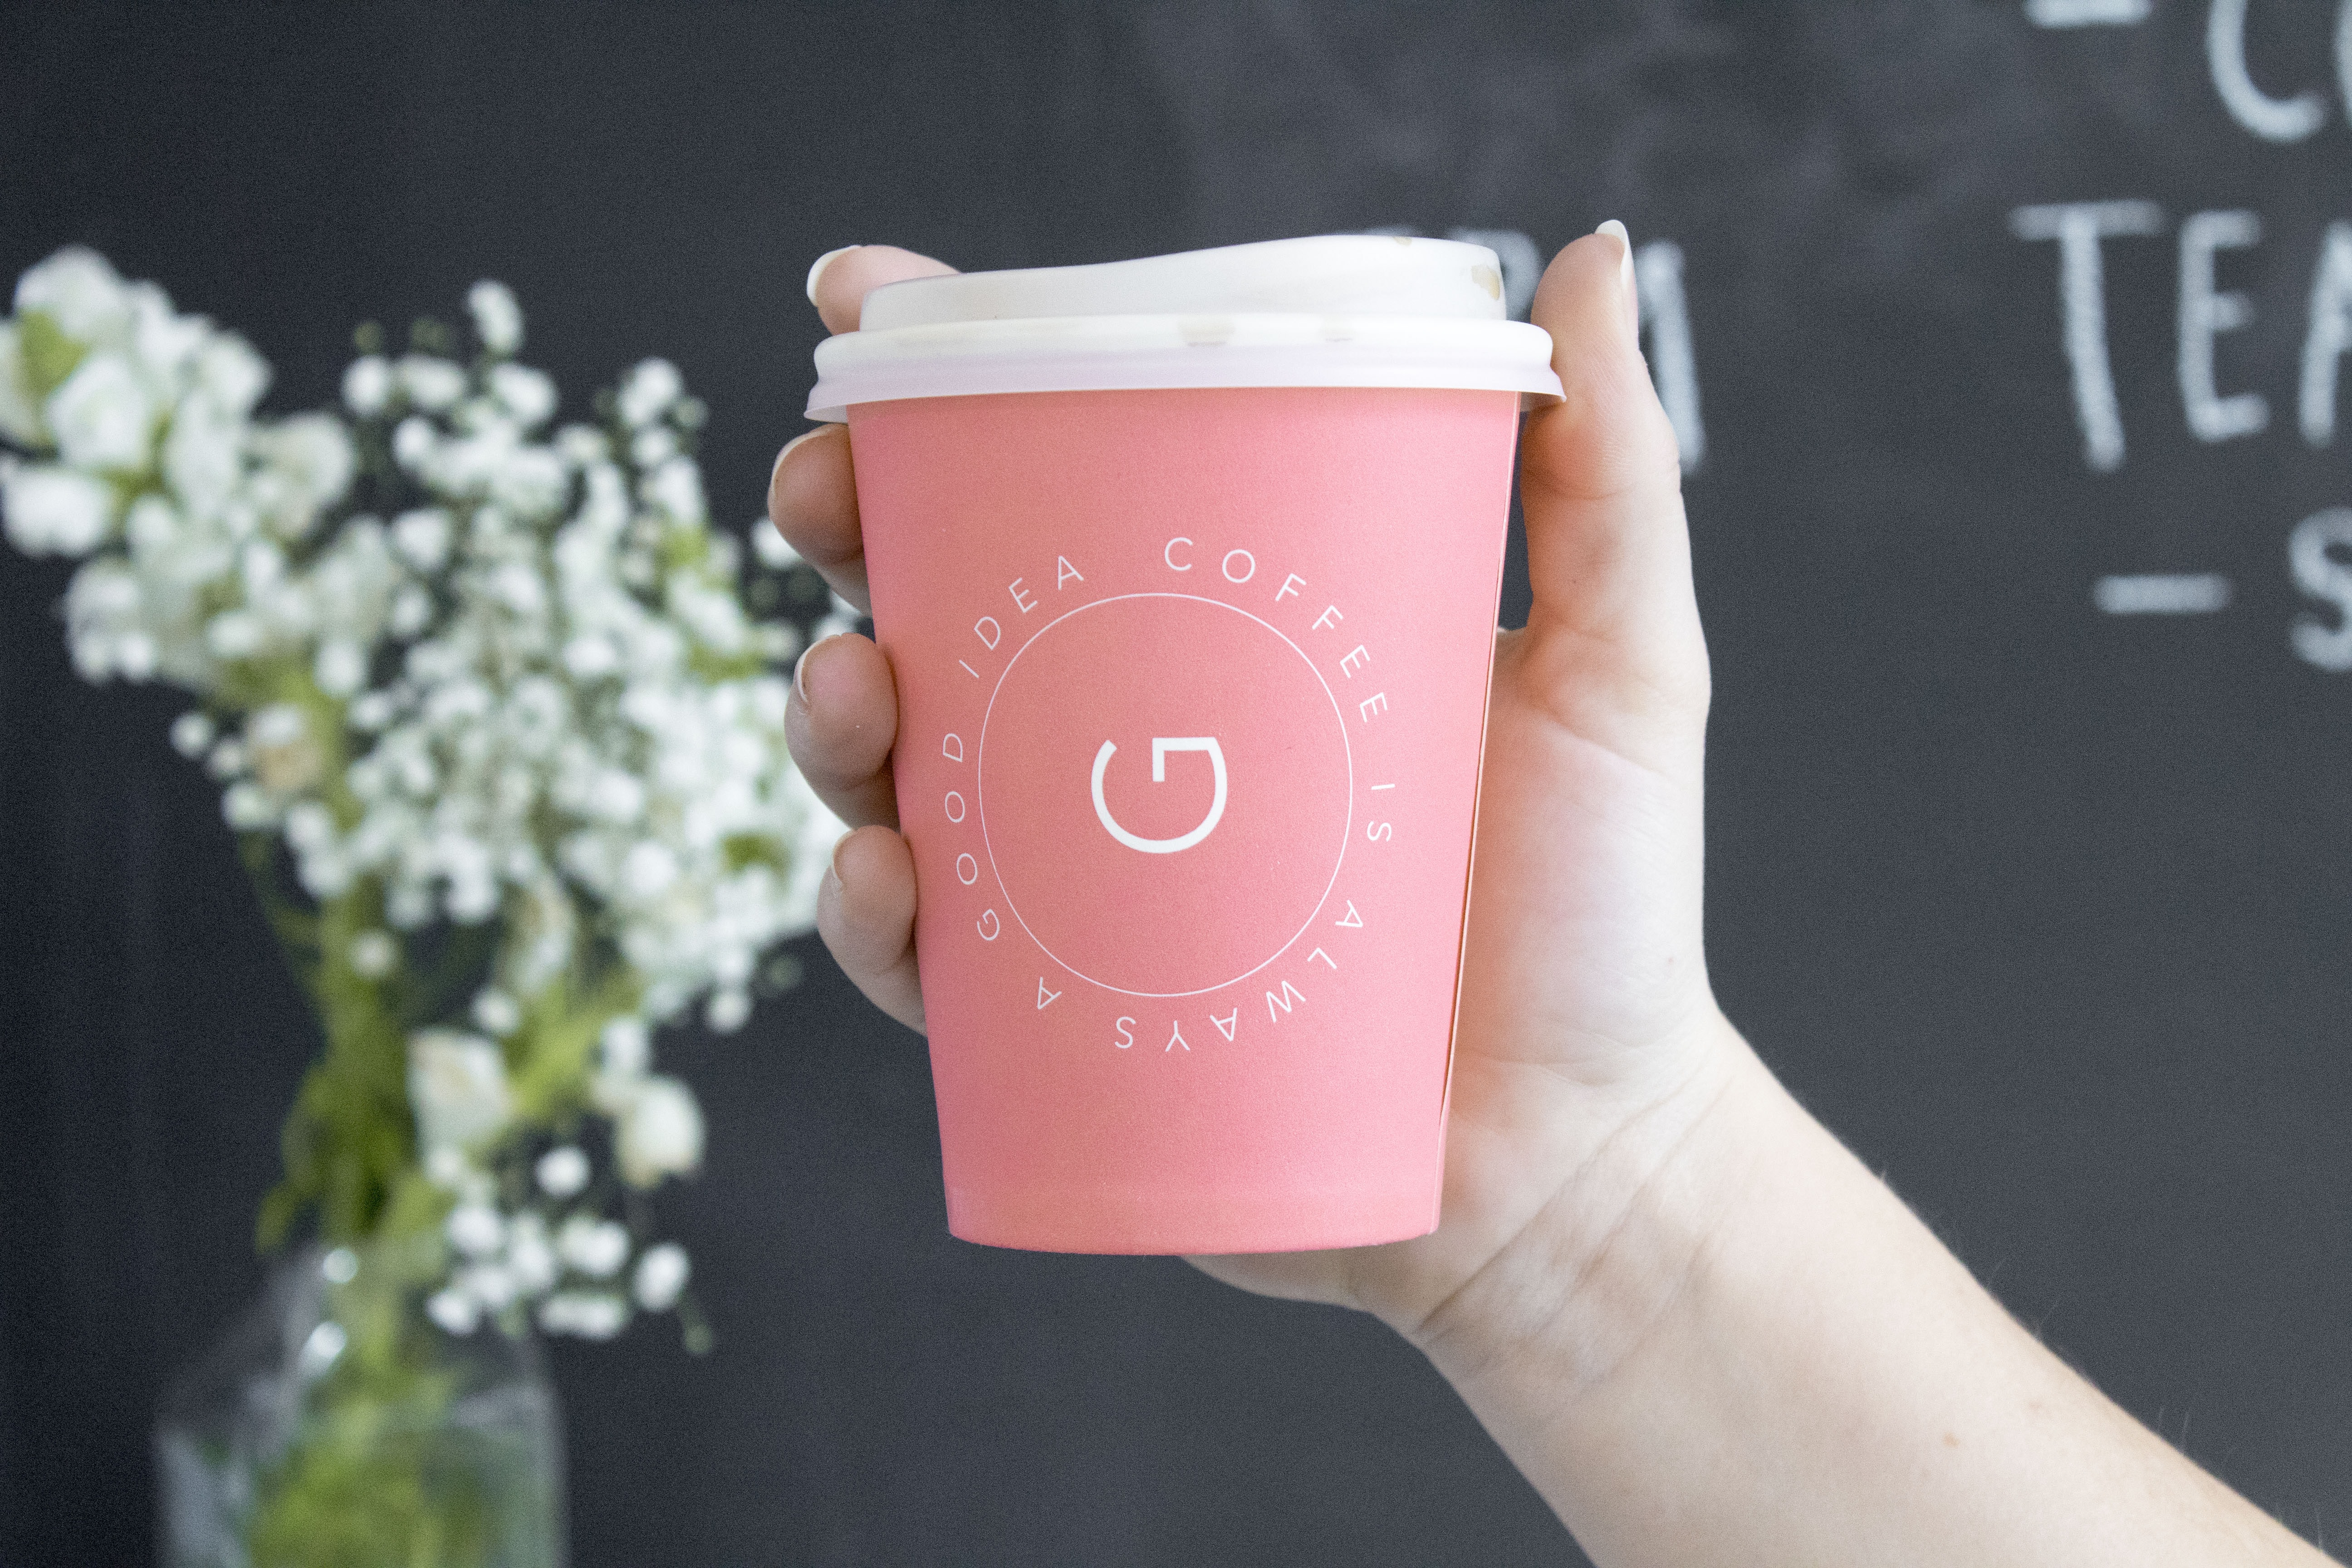 person holding pink and white disposable coffee cup